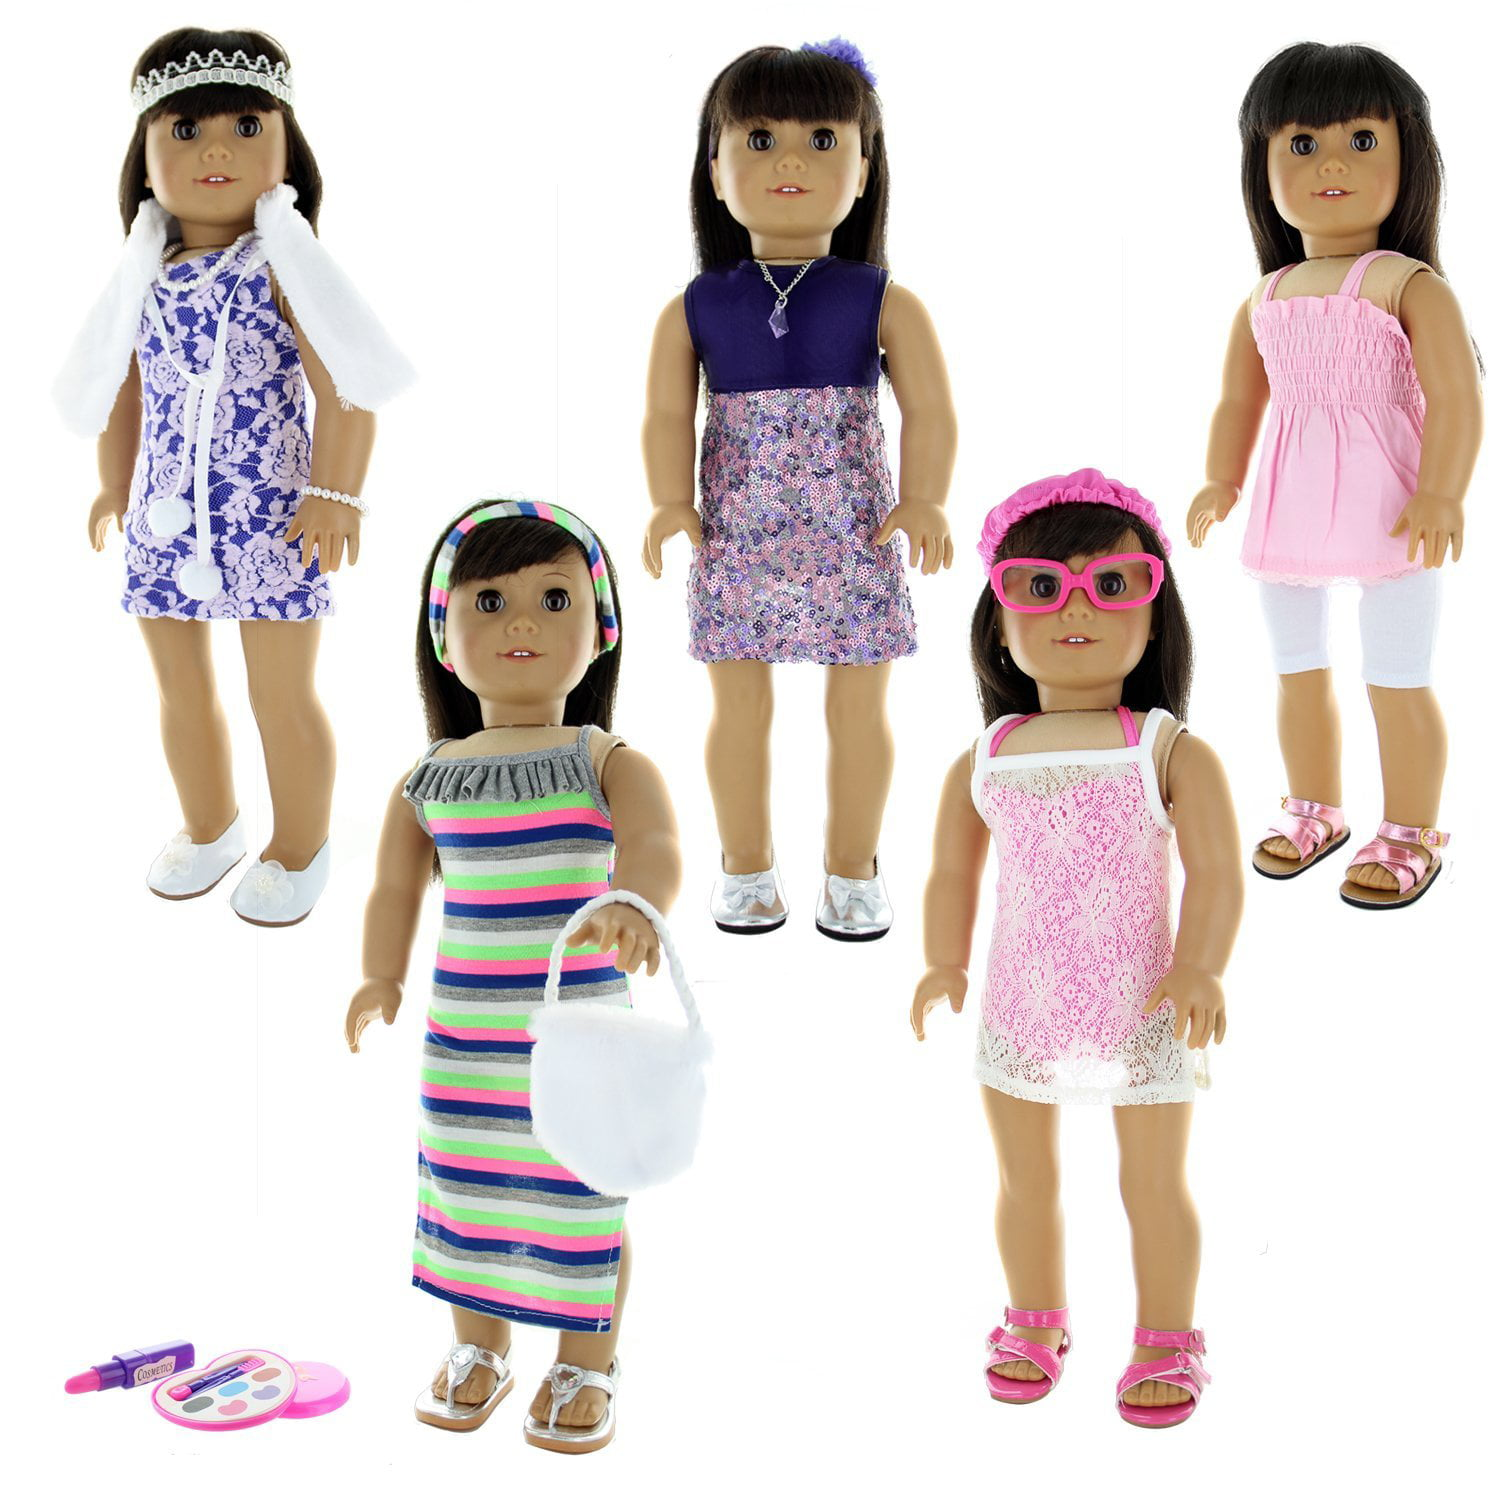 "Doll Clothes 24 Pieces Clothing Set Fits American Girl & Other 18"" Inch Dolls by Pink Butterfly Closet"